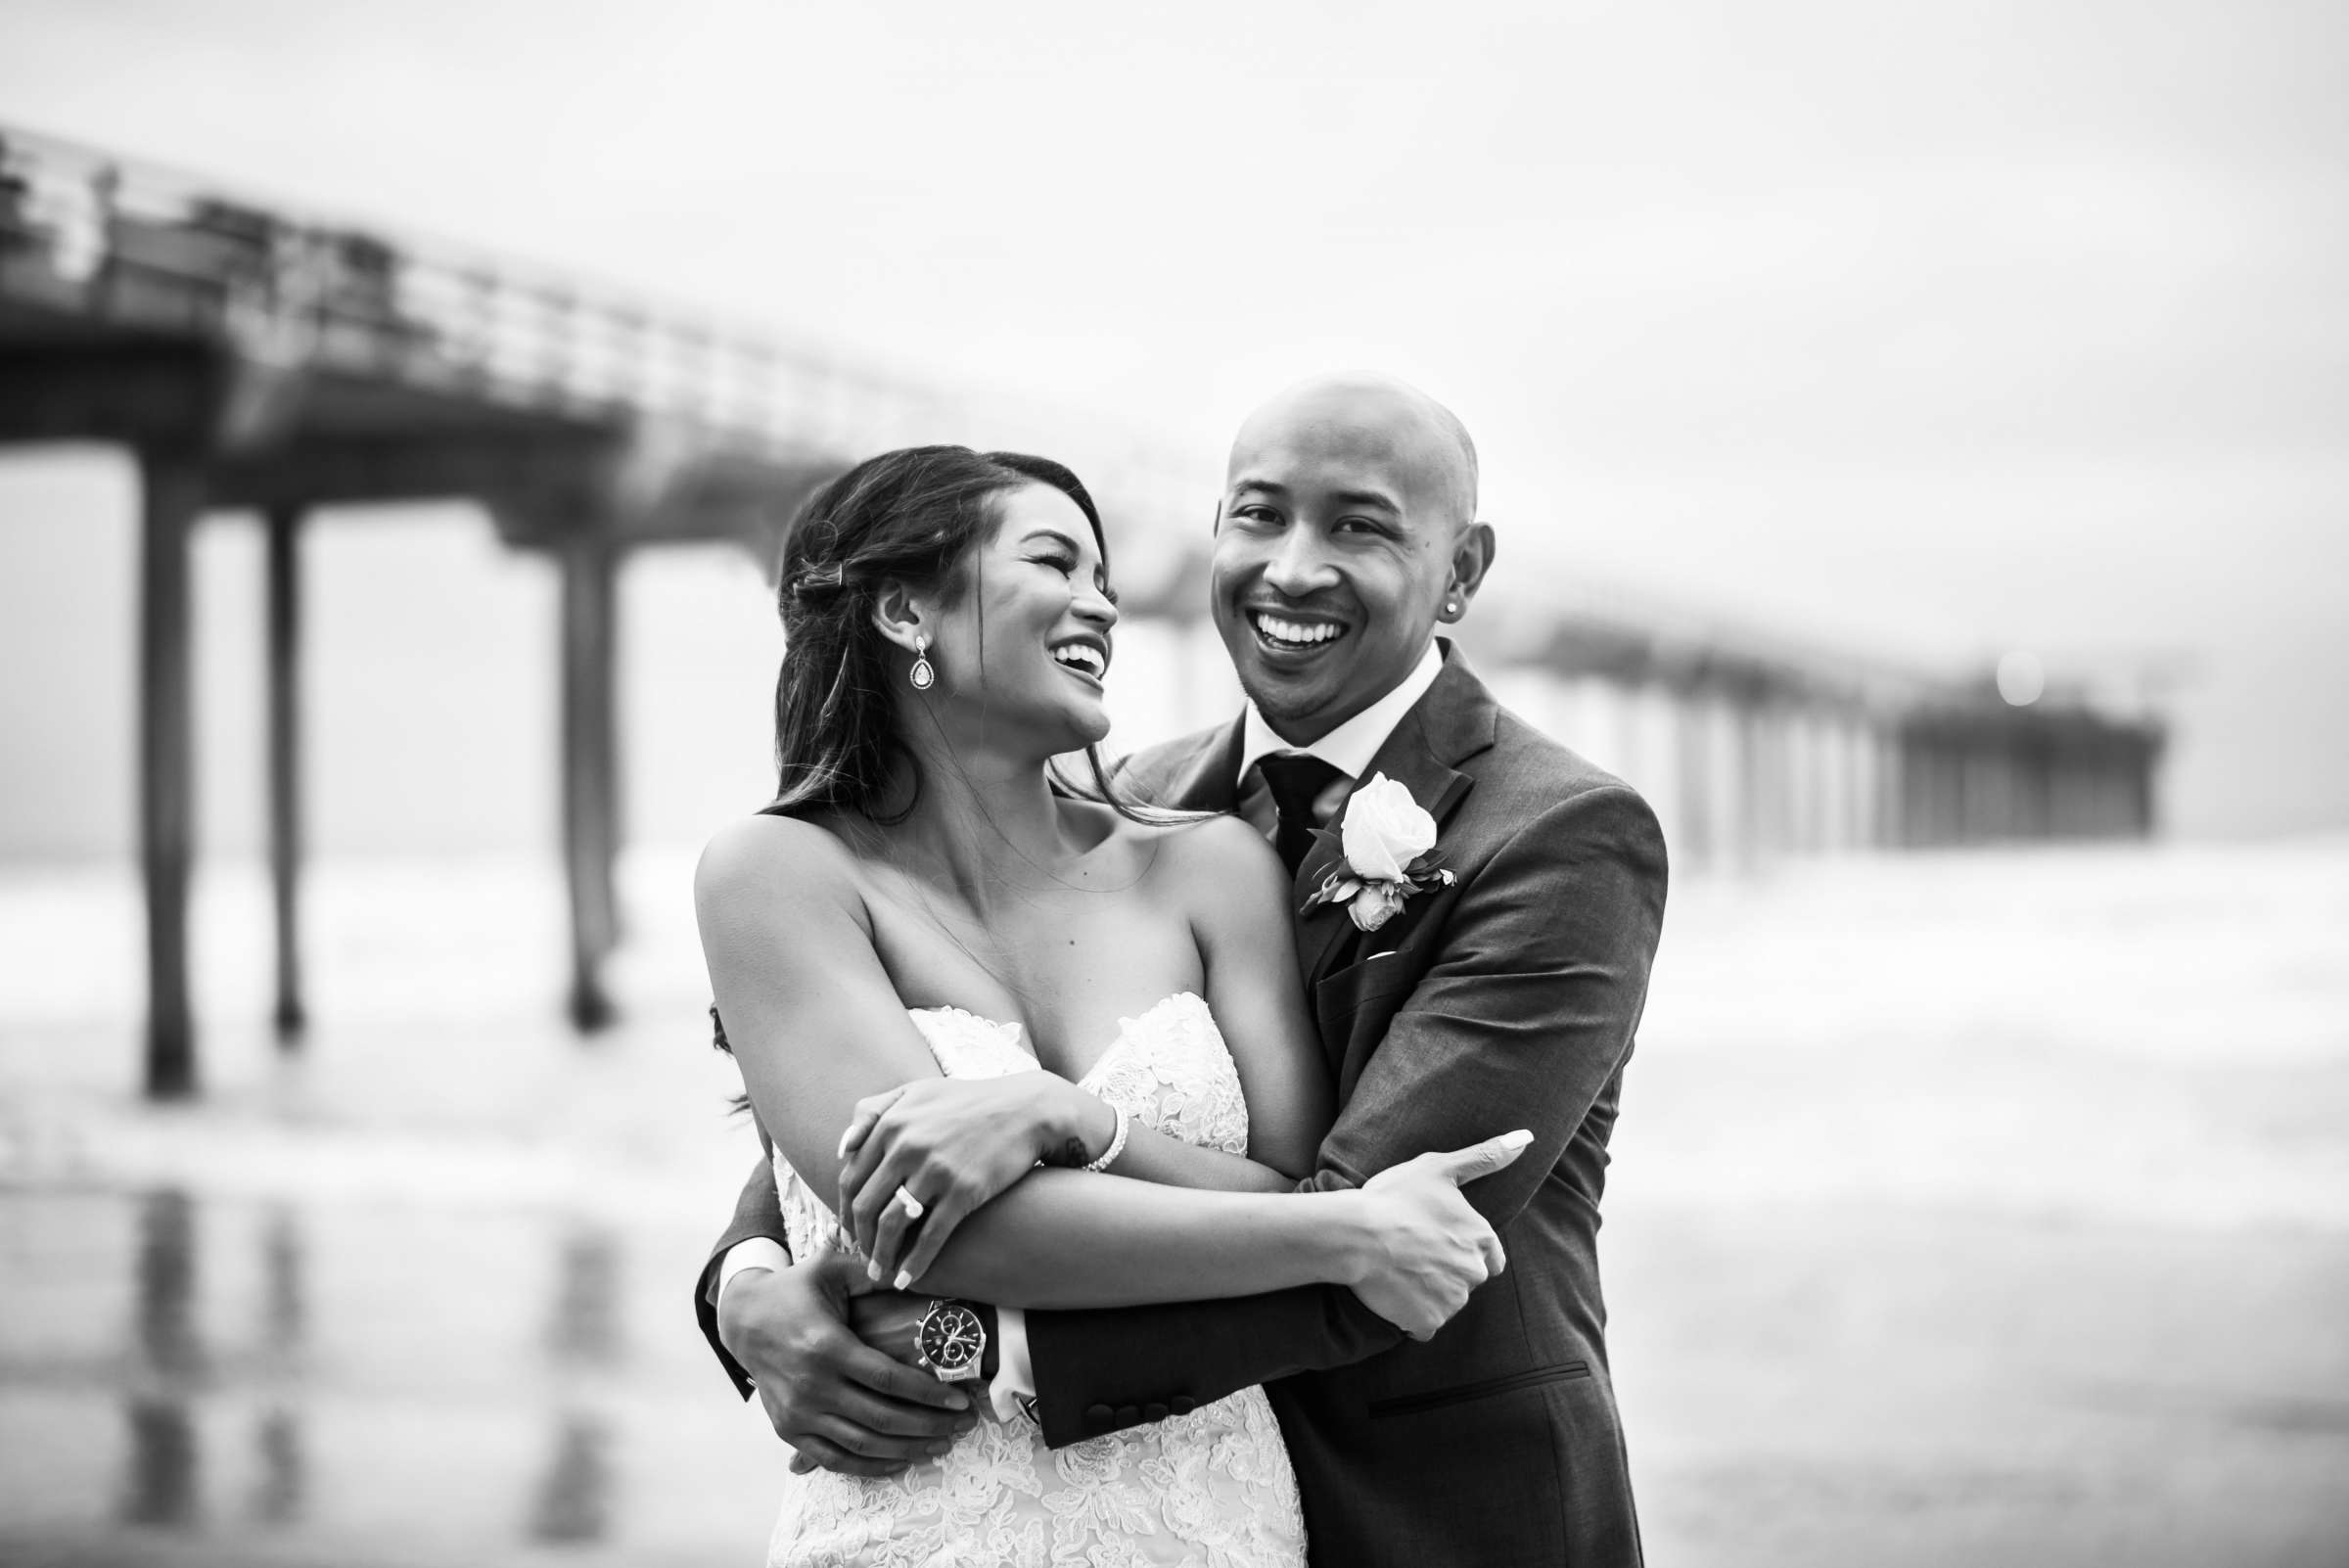 Scripps Seaside Forum Wedding coordinated by Lavish Weddings, Cindy and Justin Wedding Photo #381871 by True Photography